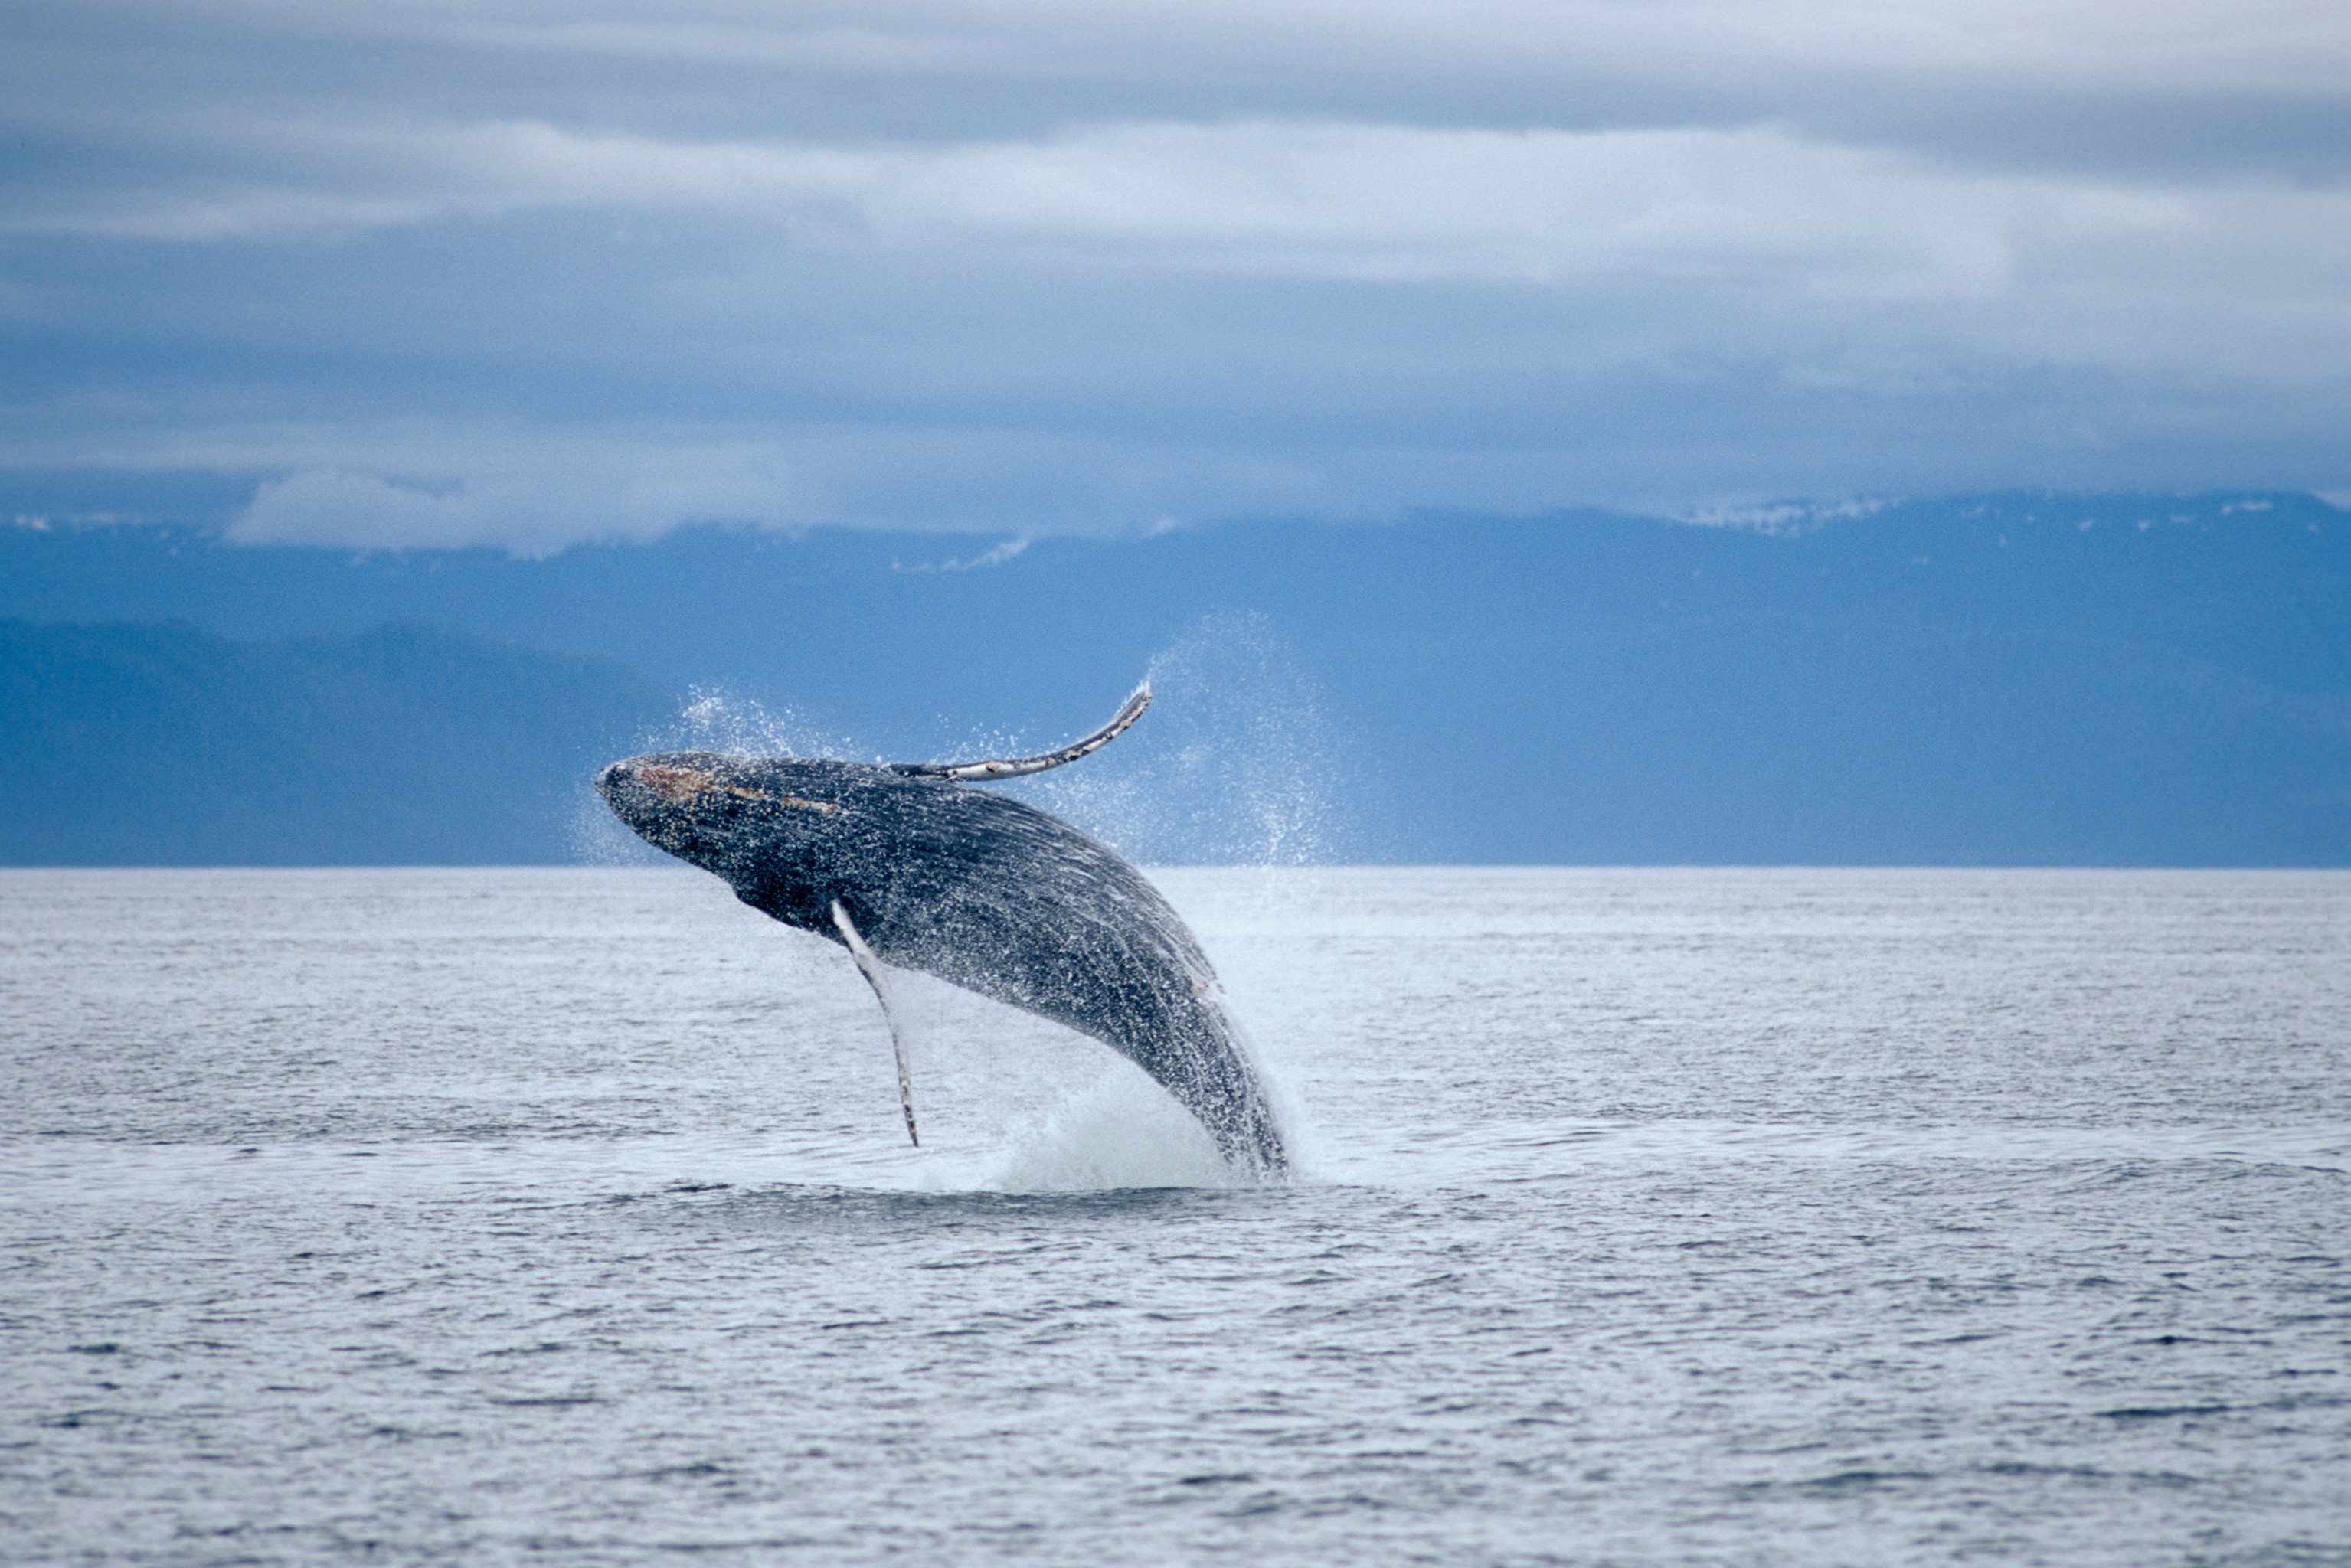 water sky aquatic mammal animal whale mammal vertebrate marine mammal whales dolphins and porpoises marine biology Ocean humpback whale mountain Sea Lake grey whale wind wave wave dolphin day